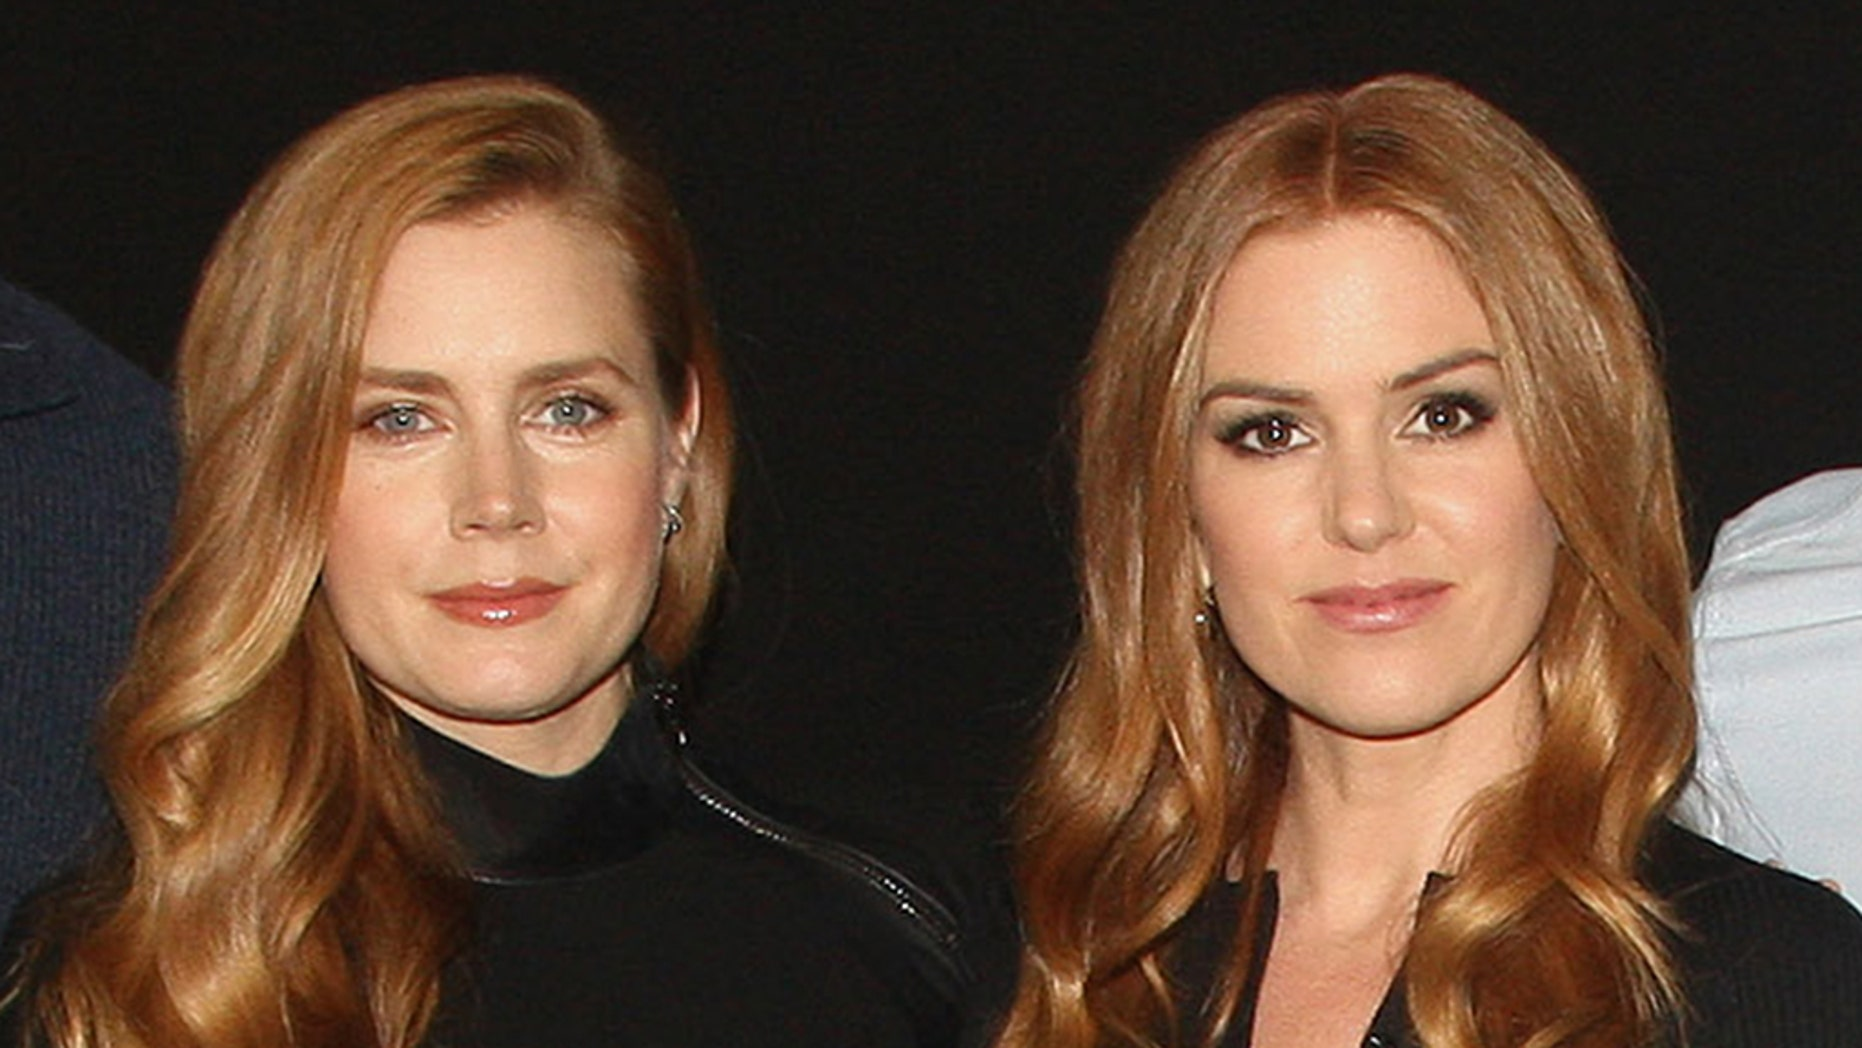 Amy Adams Sex Video isla fisher ditches amy adams doppelganger status, debuts